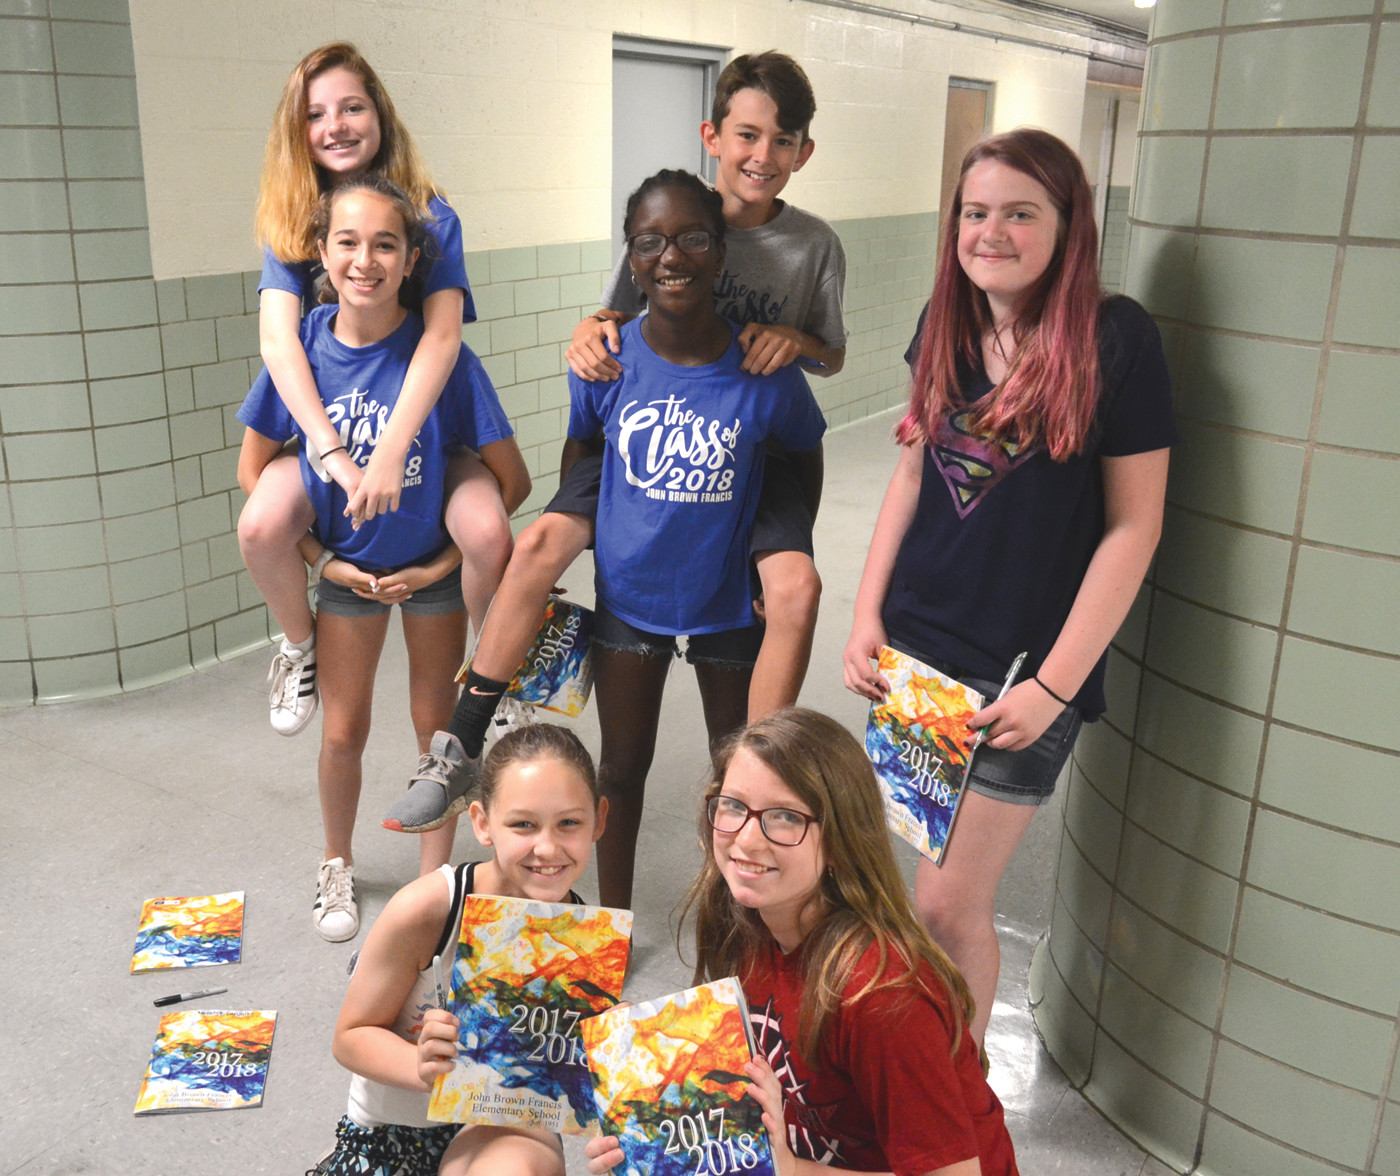 LAST DAY HOORAY! Sarah Rapa, Emilie Desper, Liam Budz, Dhany Beauvrun, Gabrielle Quimby, Charlotte Beaune and Nazalya Carvalho enjoyed wandering the halls during their last day of school at John Brown Francis.